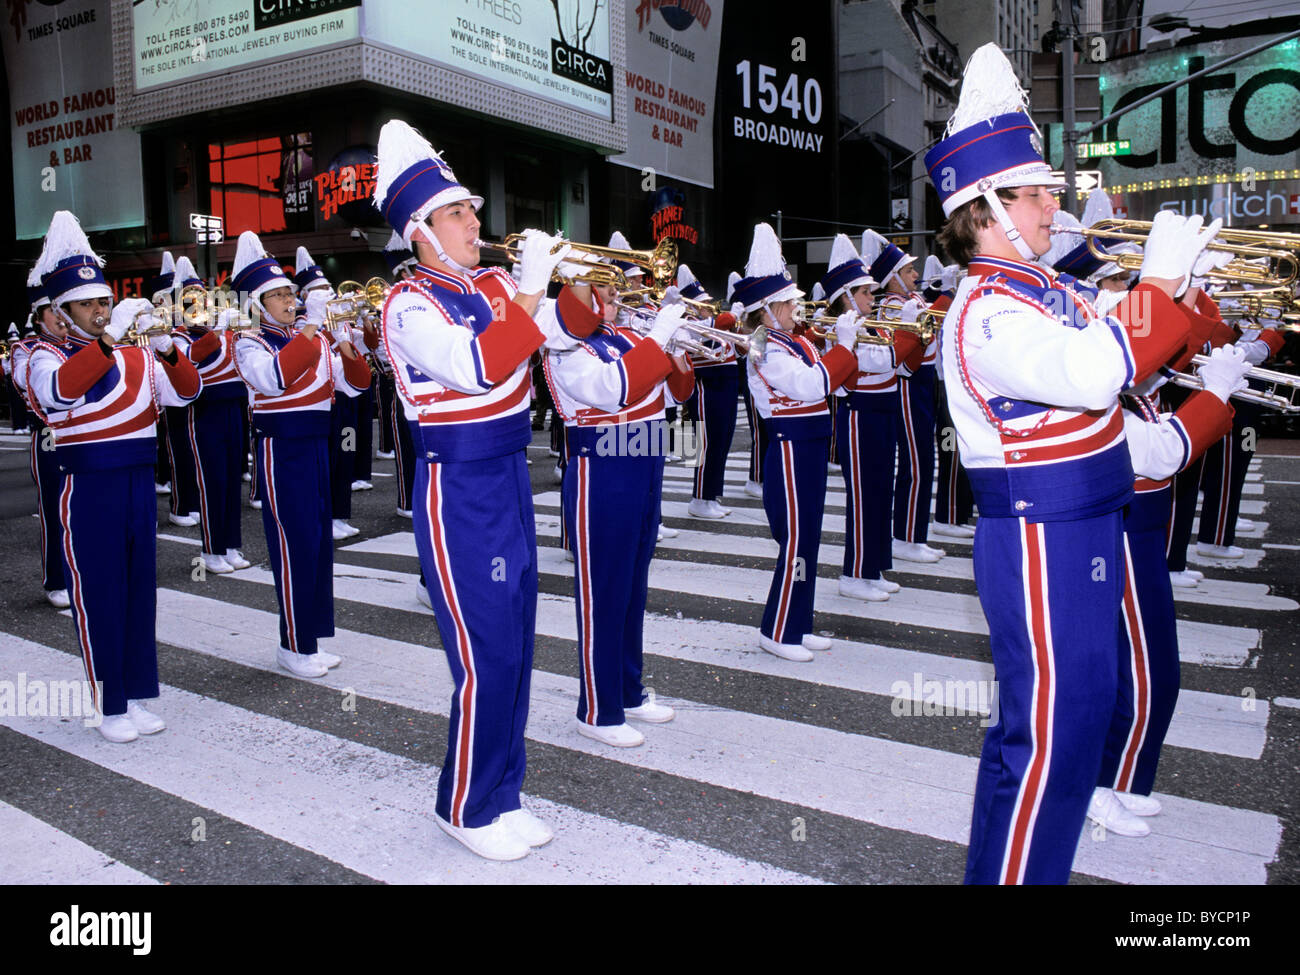 USA New York City Trumpet Players Thanksgiving Macy's Parade Marching Band - Stock Image